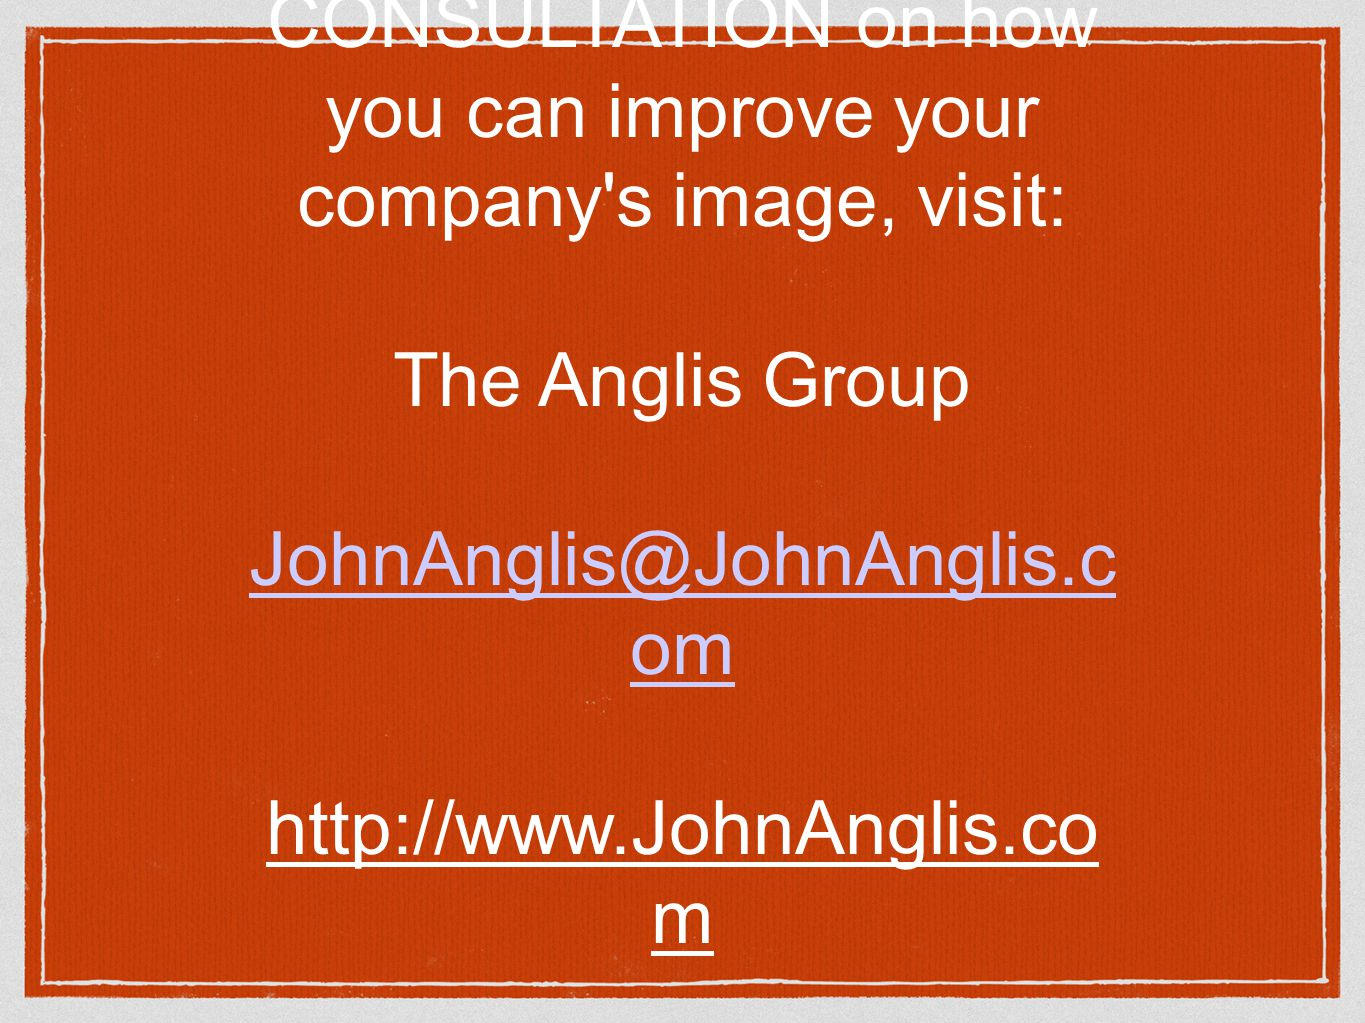 For a FREE CONSULTATION on how you can improve your company s image, visit: The Anglis Group JohnAnglis@JohnAnglis.c om http://www.JohnAnglis.co m (860) 651-3424